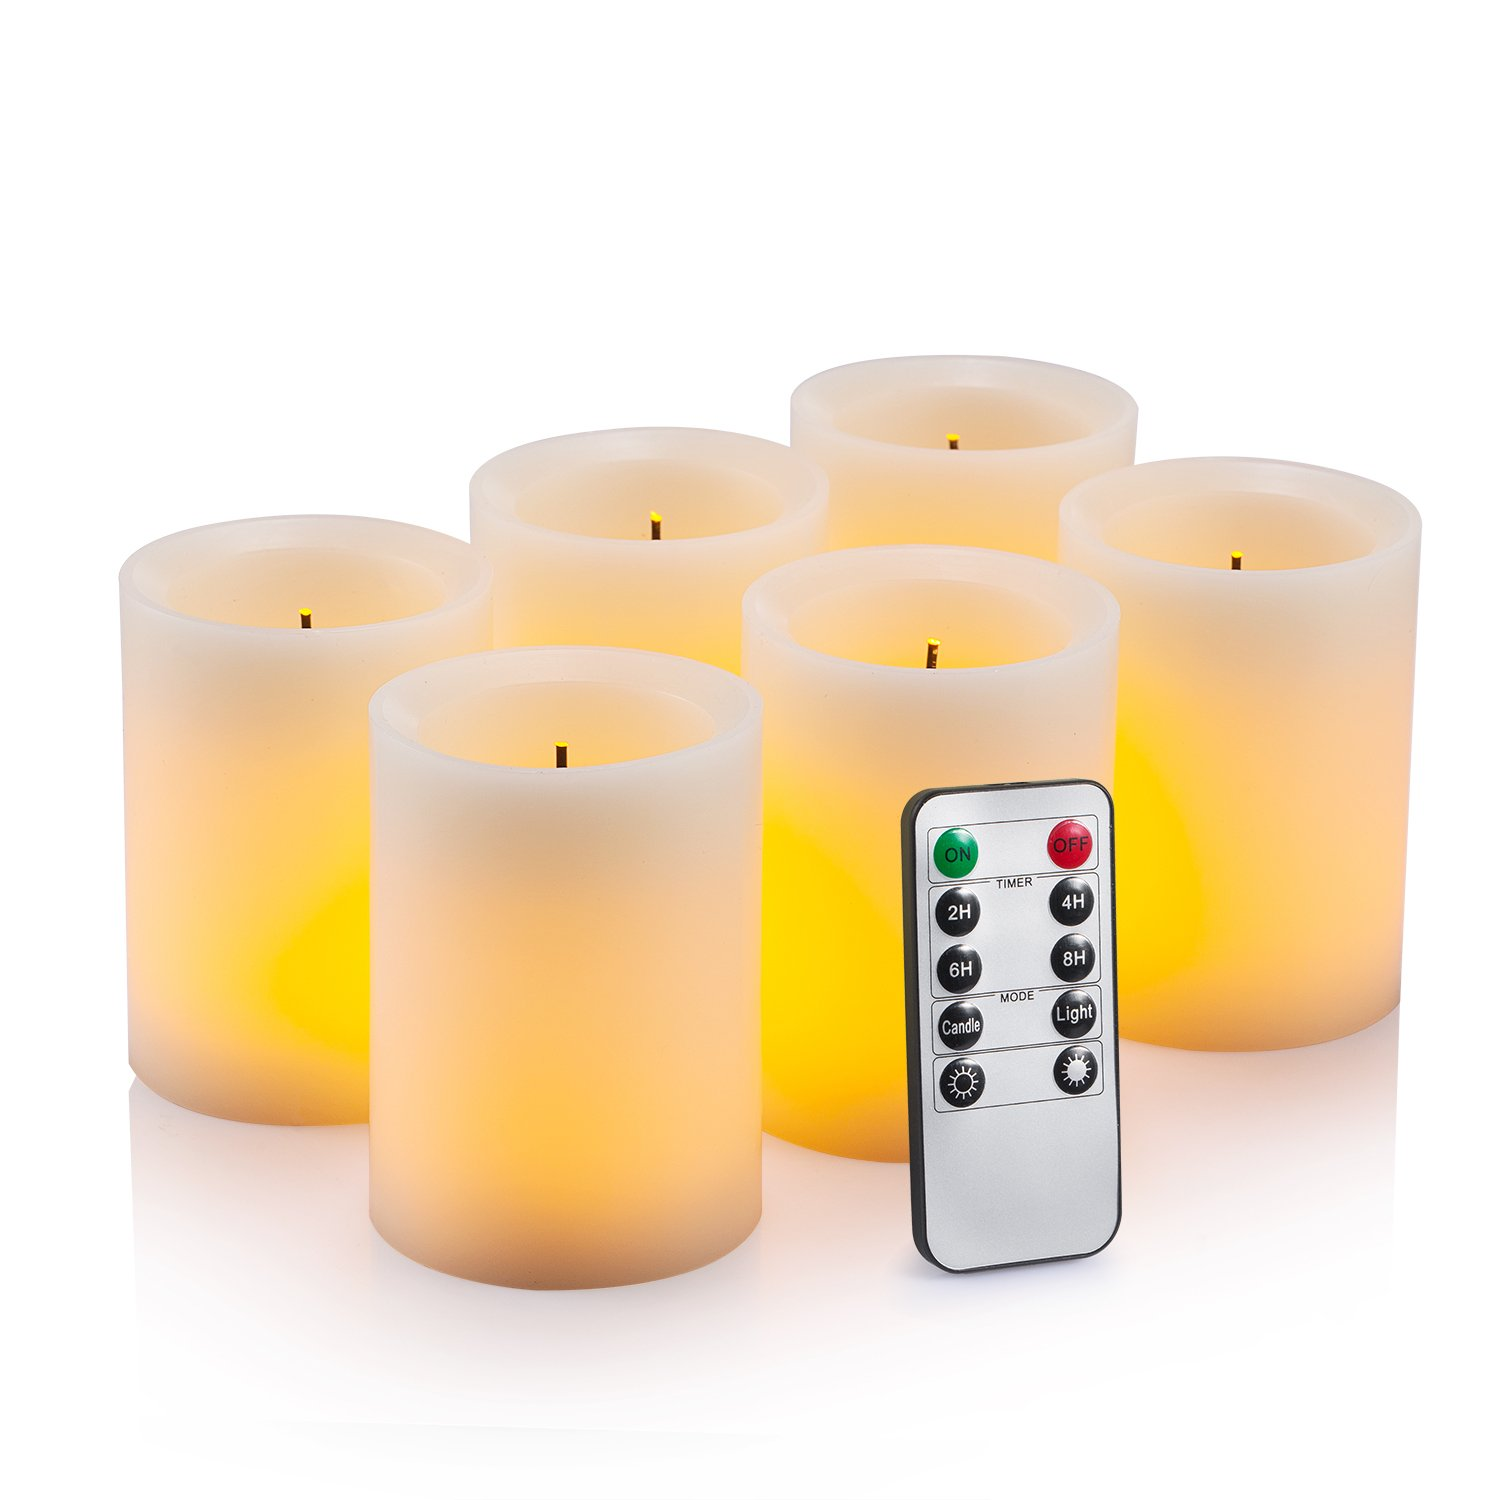 Flameless flickering led candles 3 x 4 with 10 key remote control timer